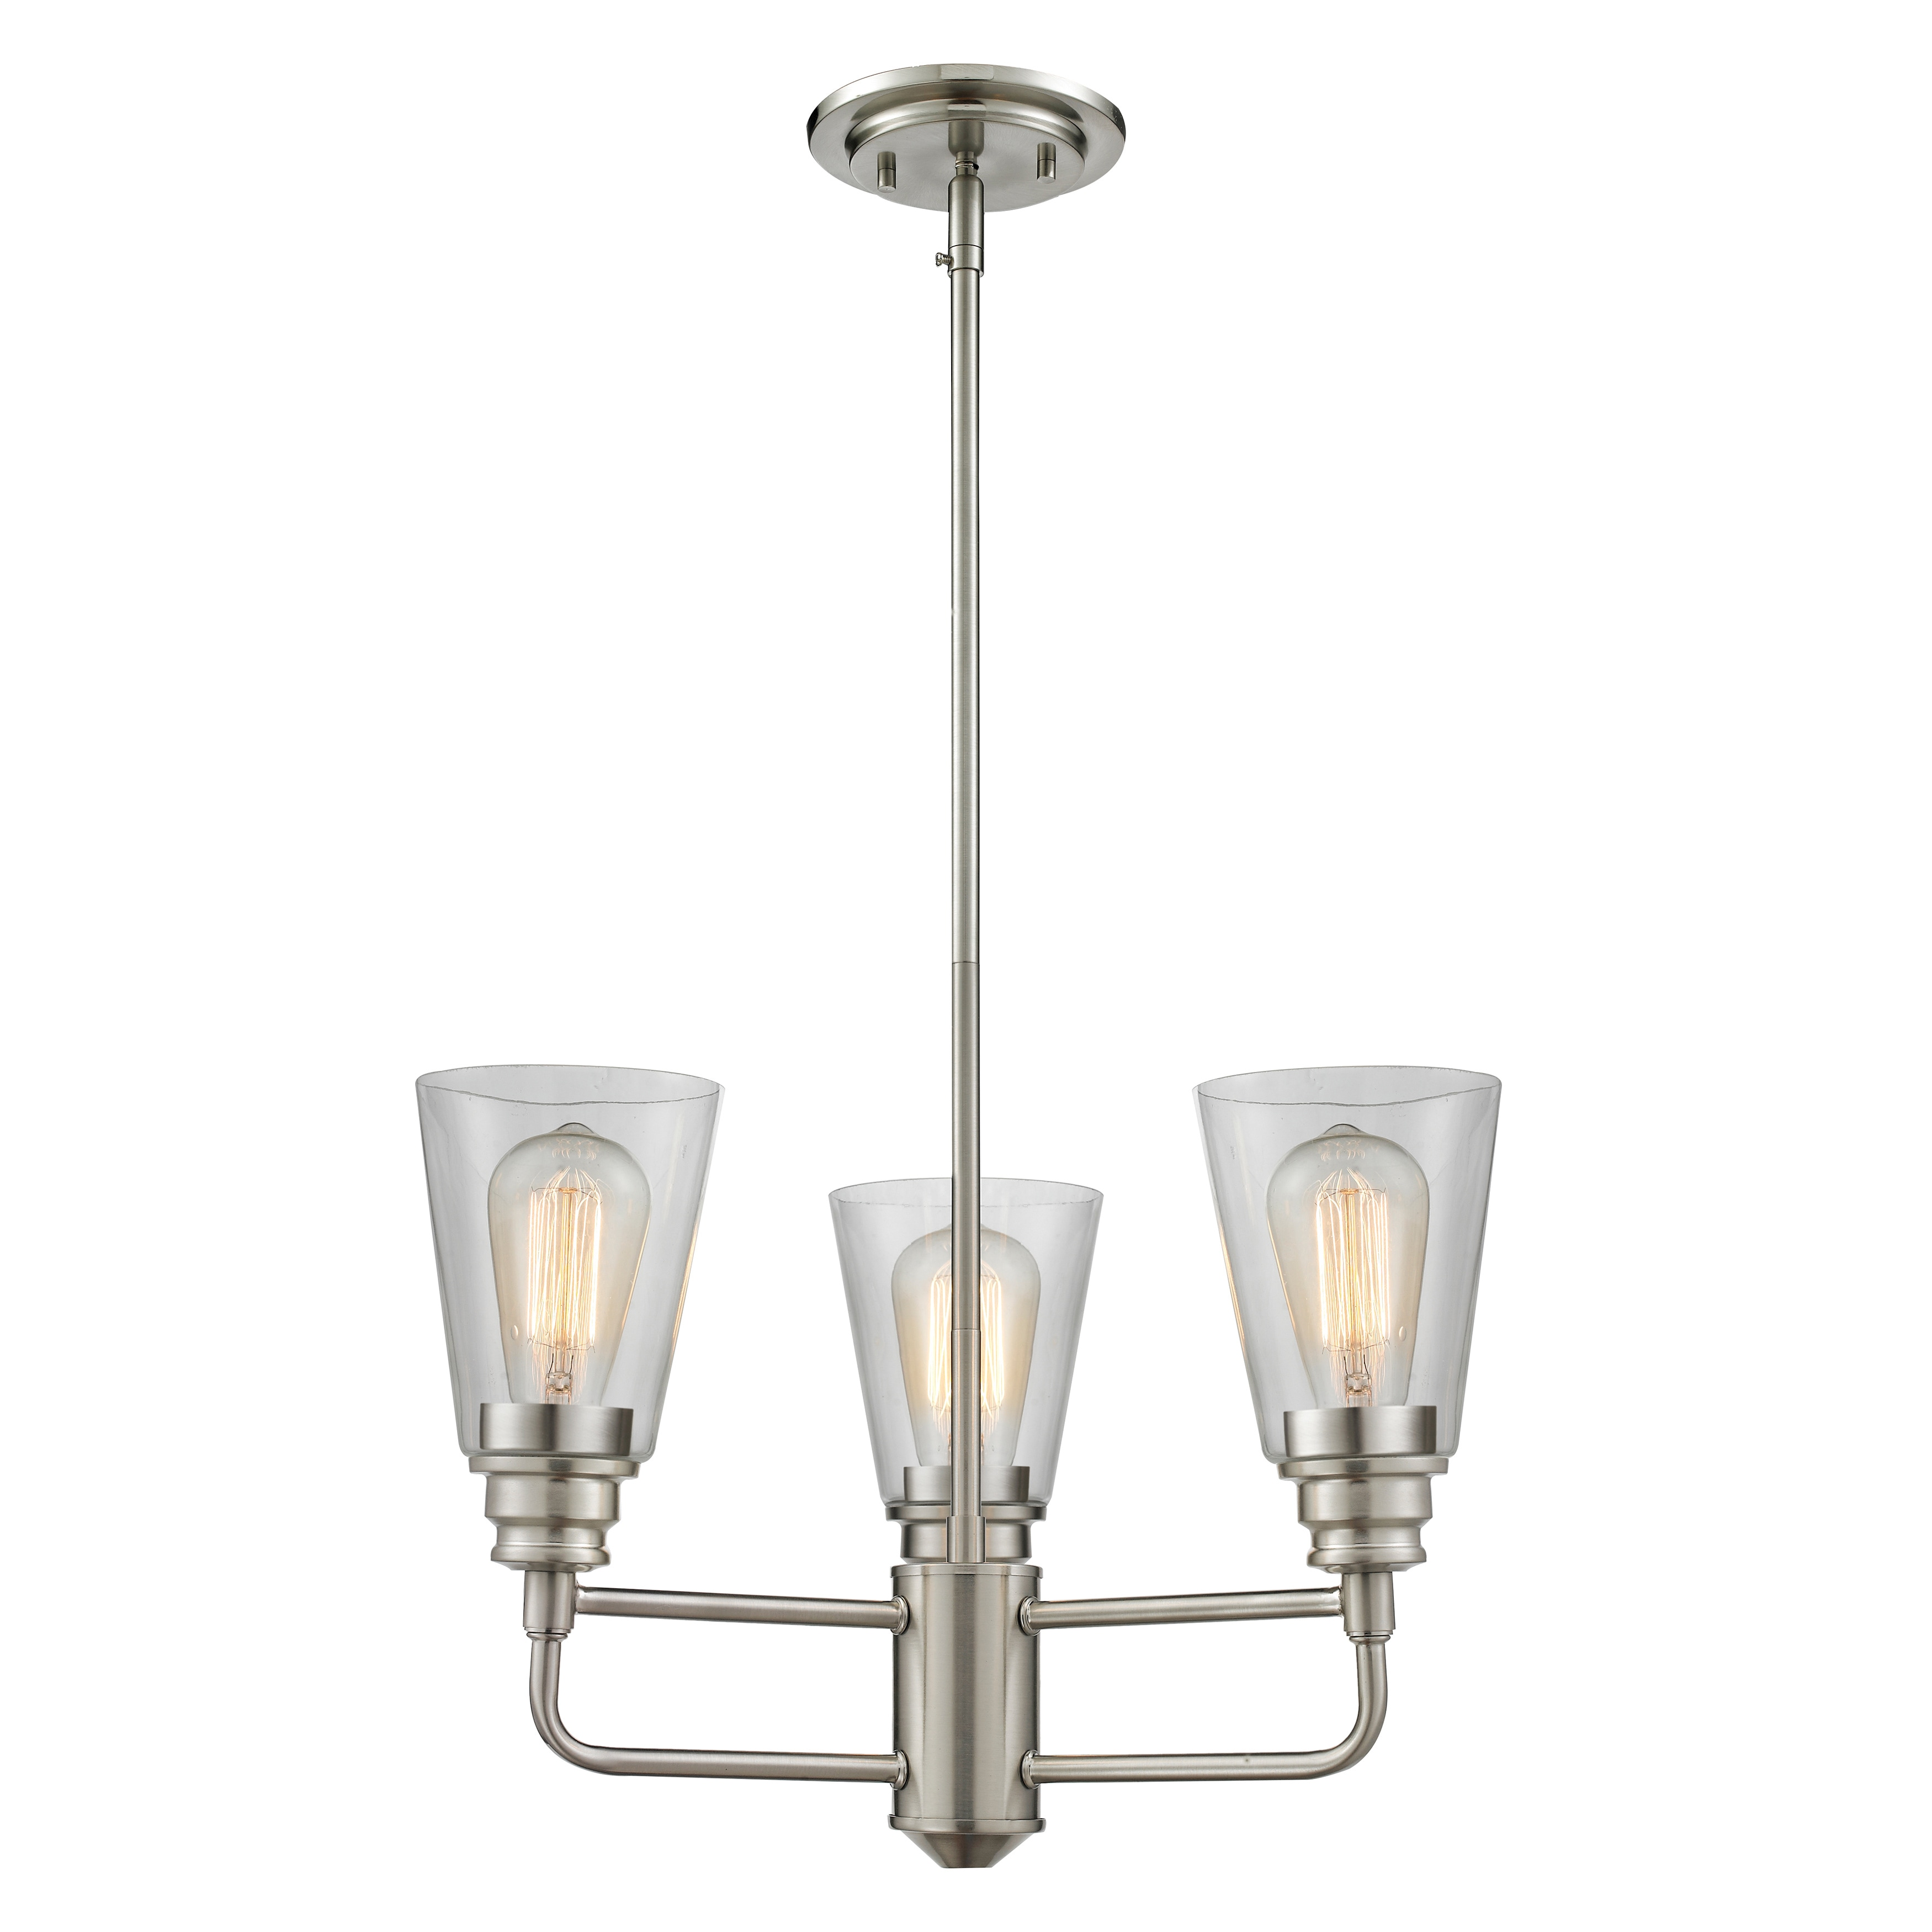 Image of: Shop Avery Home Lighting Annora 3 Light Brushed Nickel Clear Glass Chandelier Overstock 9957983